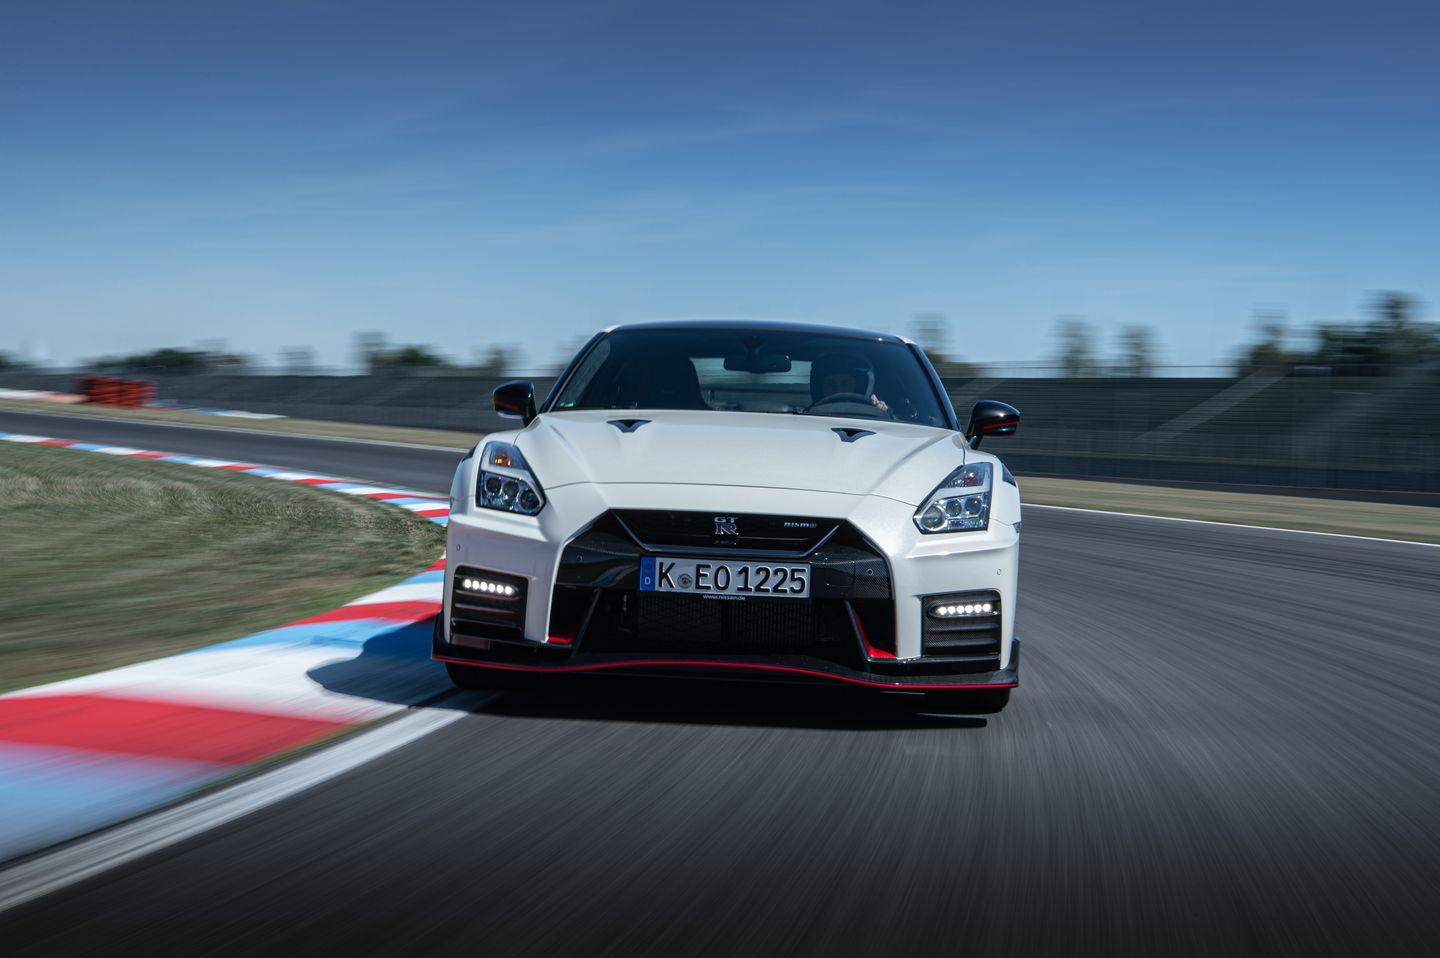 <p>The GT-R NISMO's twin-turbo 3.8-liter V-6 is still rated at 600 horsepower, but fresh turbochargers lifted from the racing program promise quicker throttle response.</p>